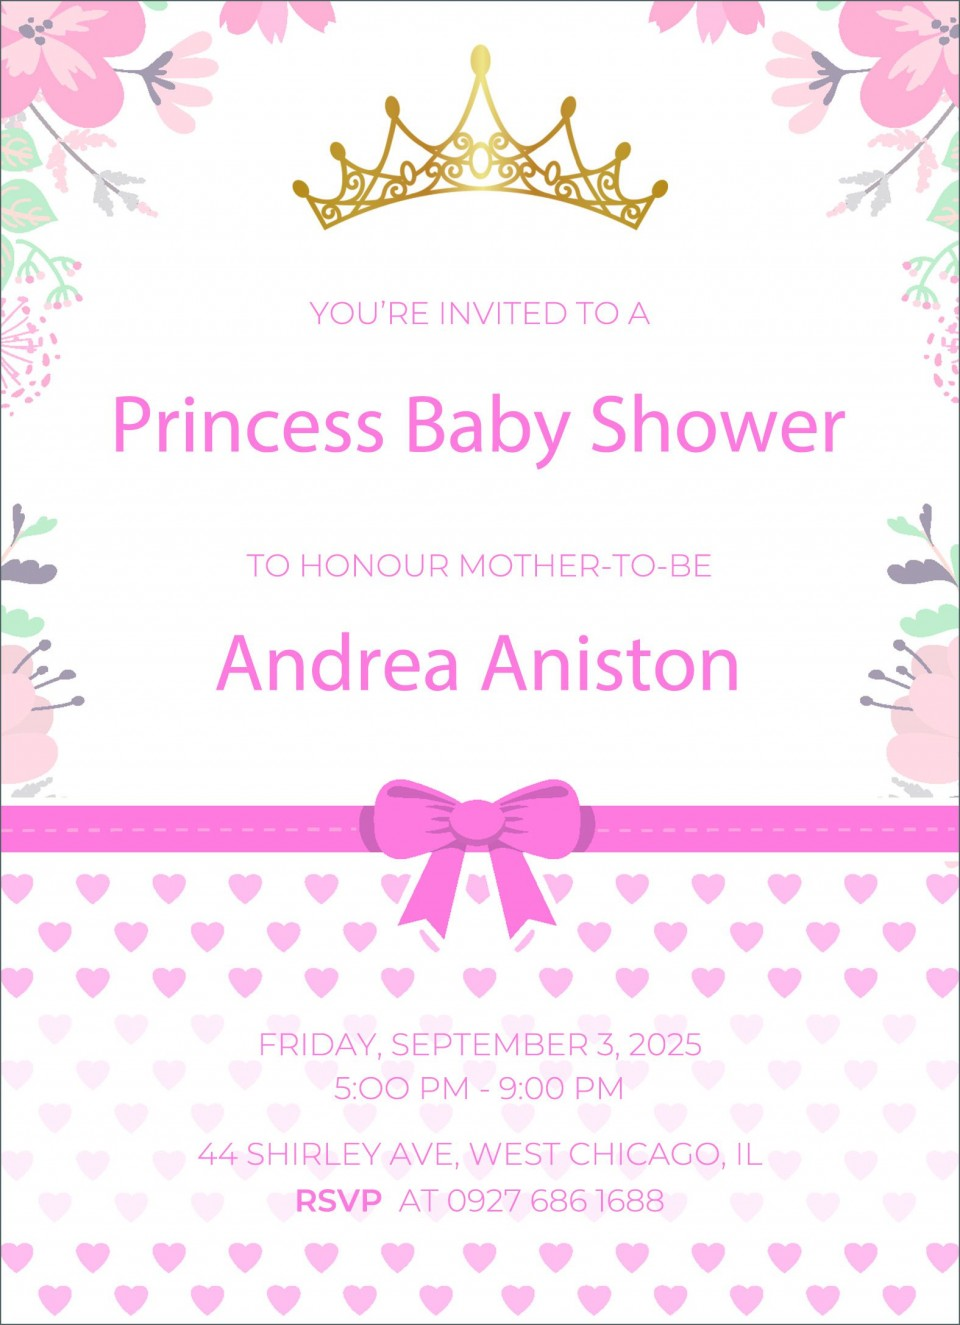 002 Impressive Free Baby Shower Invitation Template High Def  Printable For A Girl Microsoft Word960